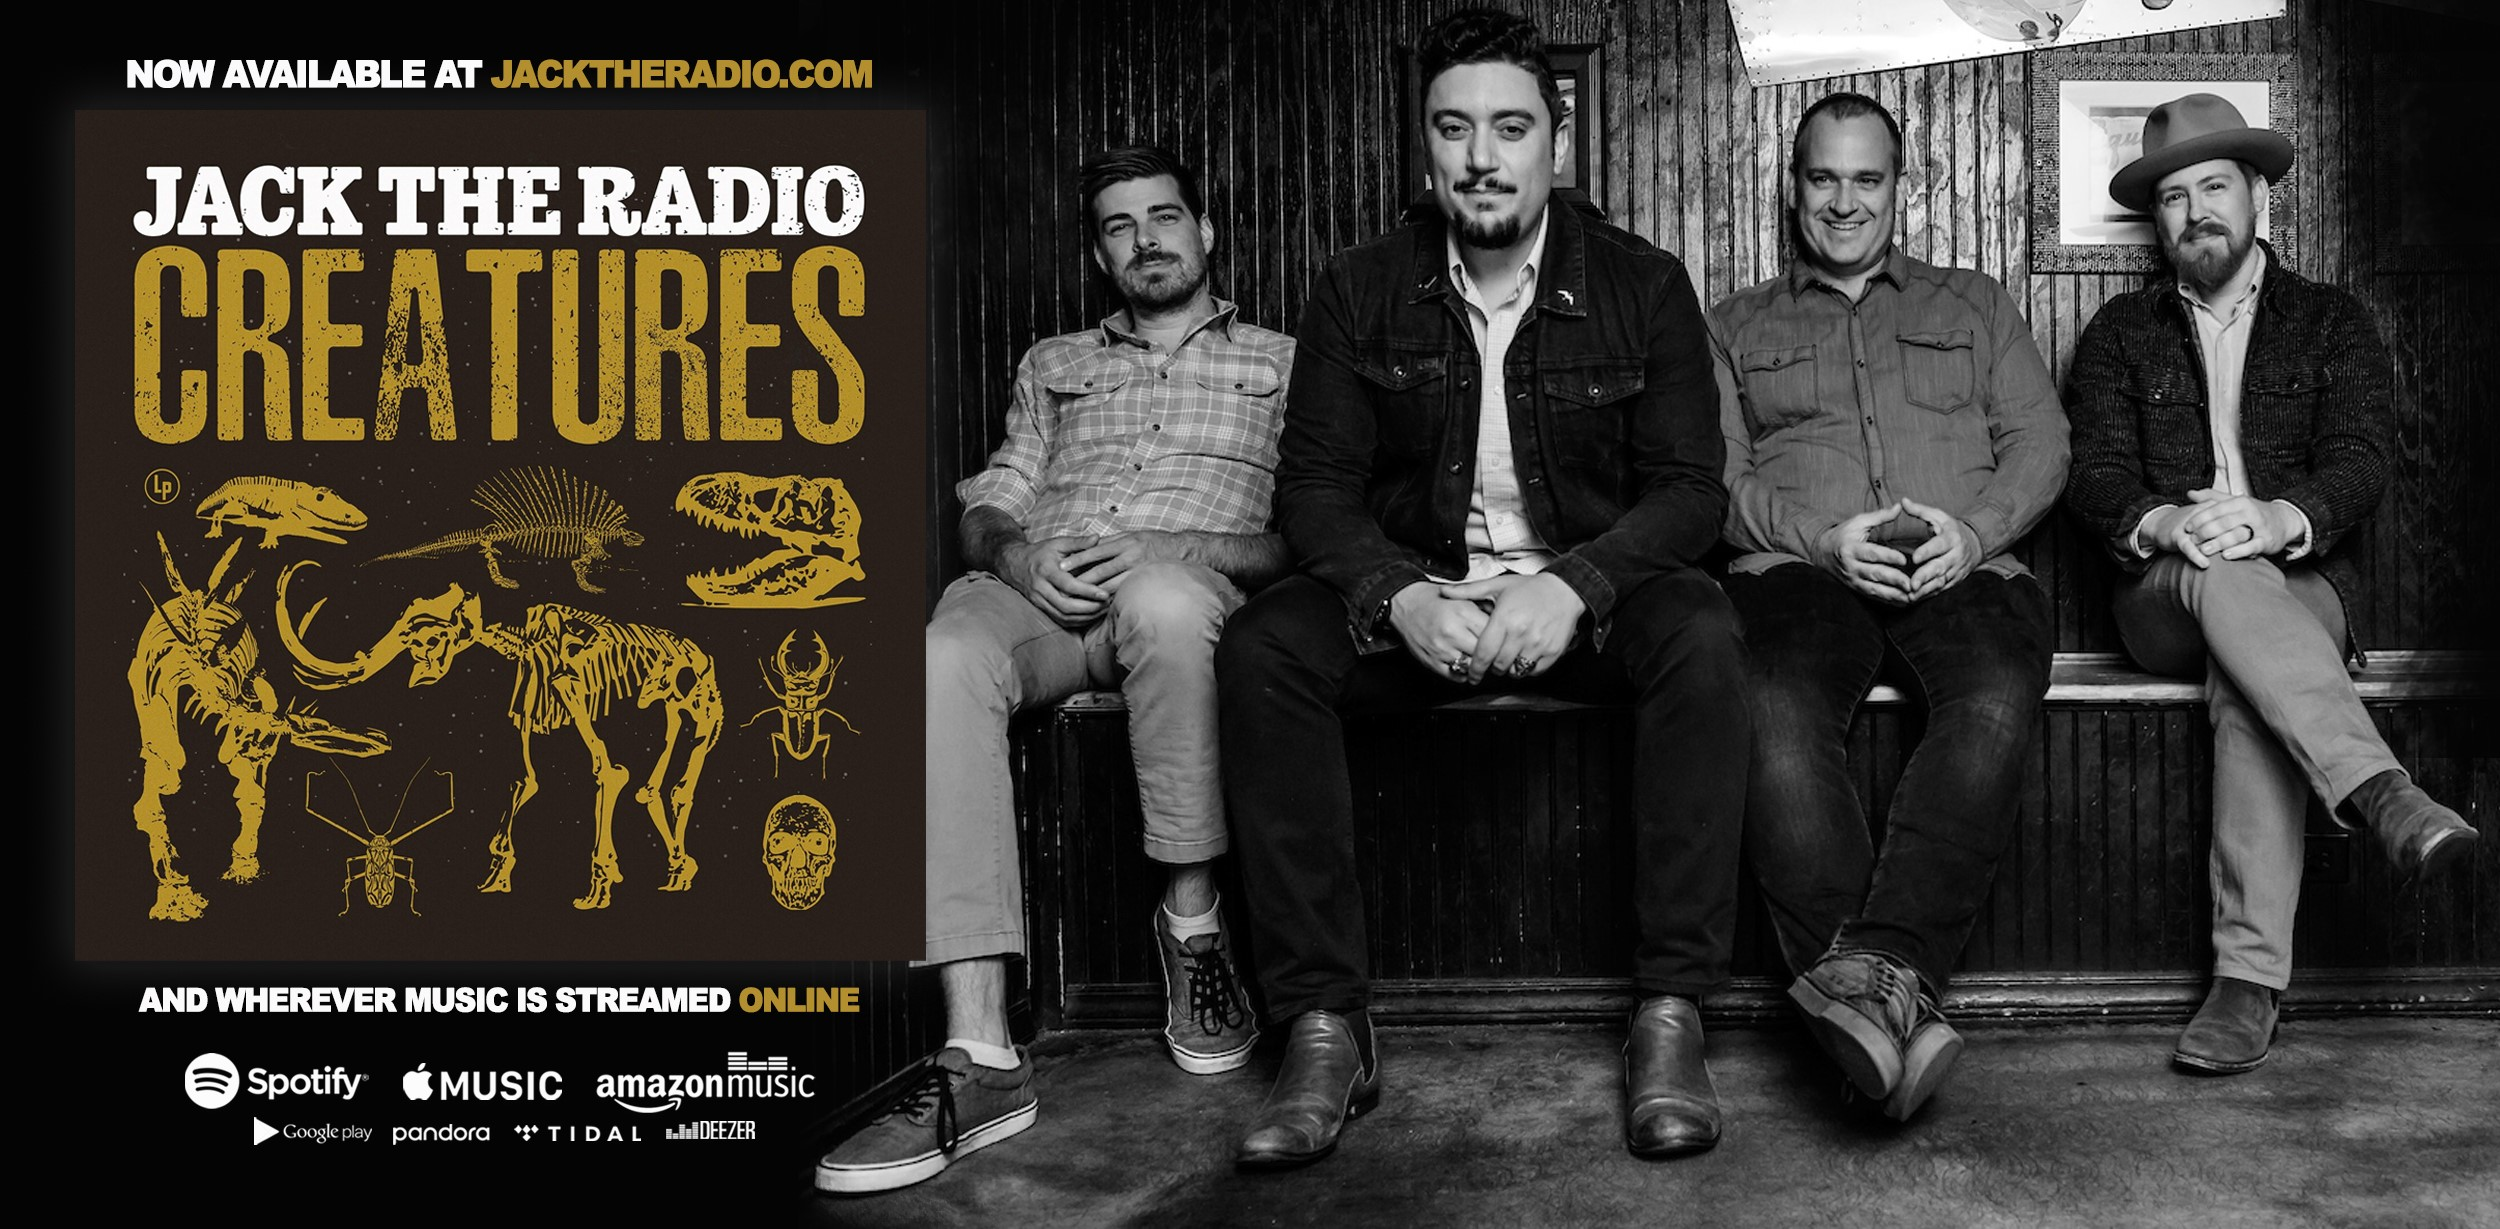 Jack The Radio Releases Creatures Today